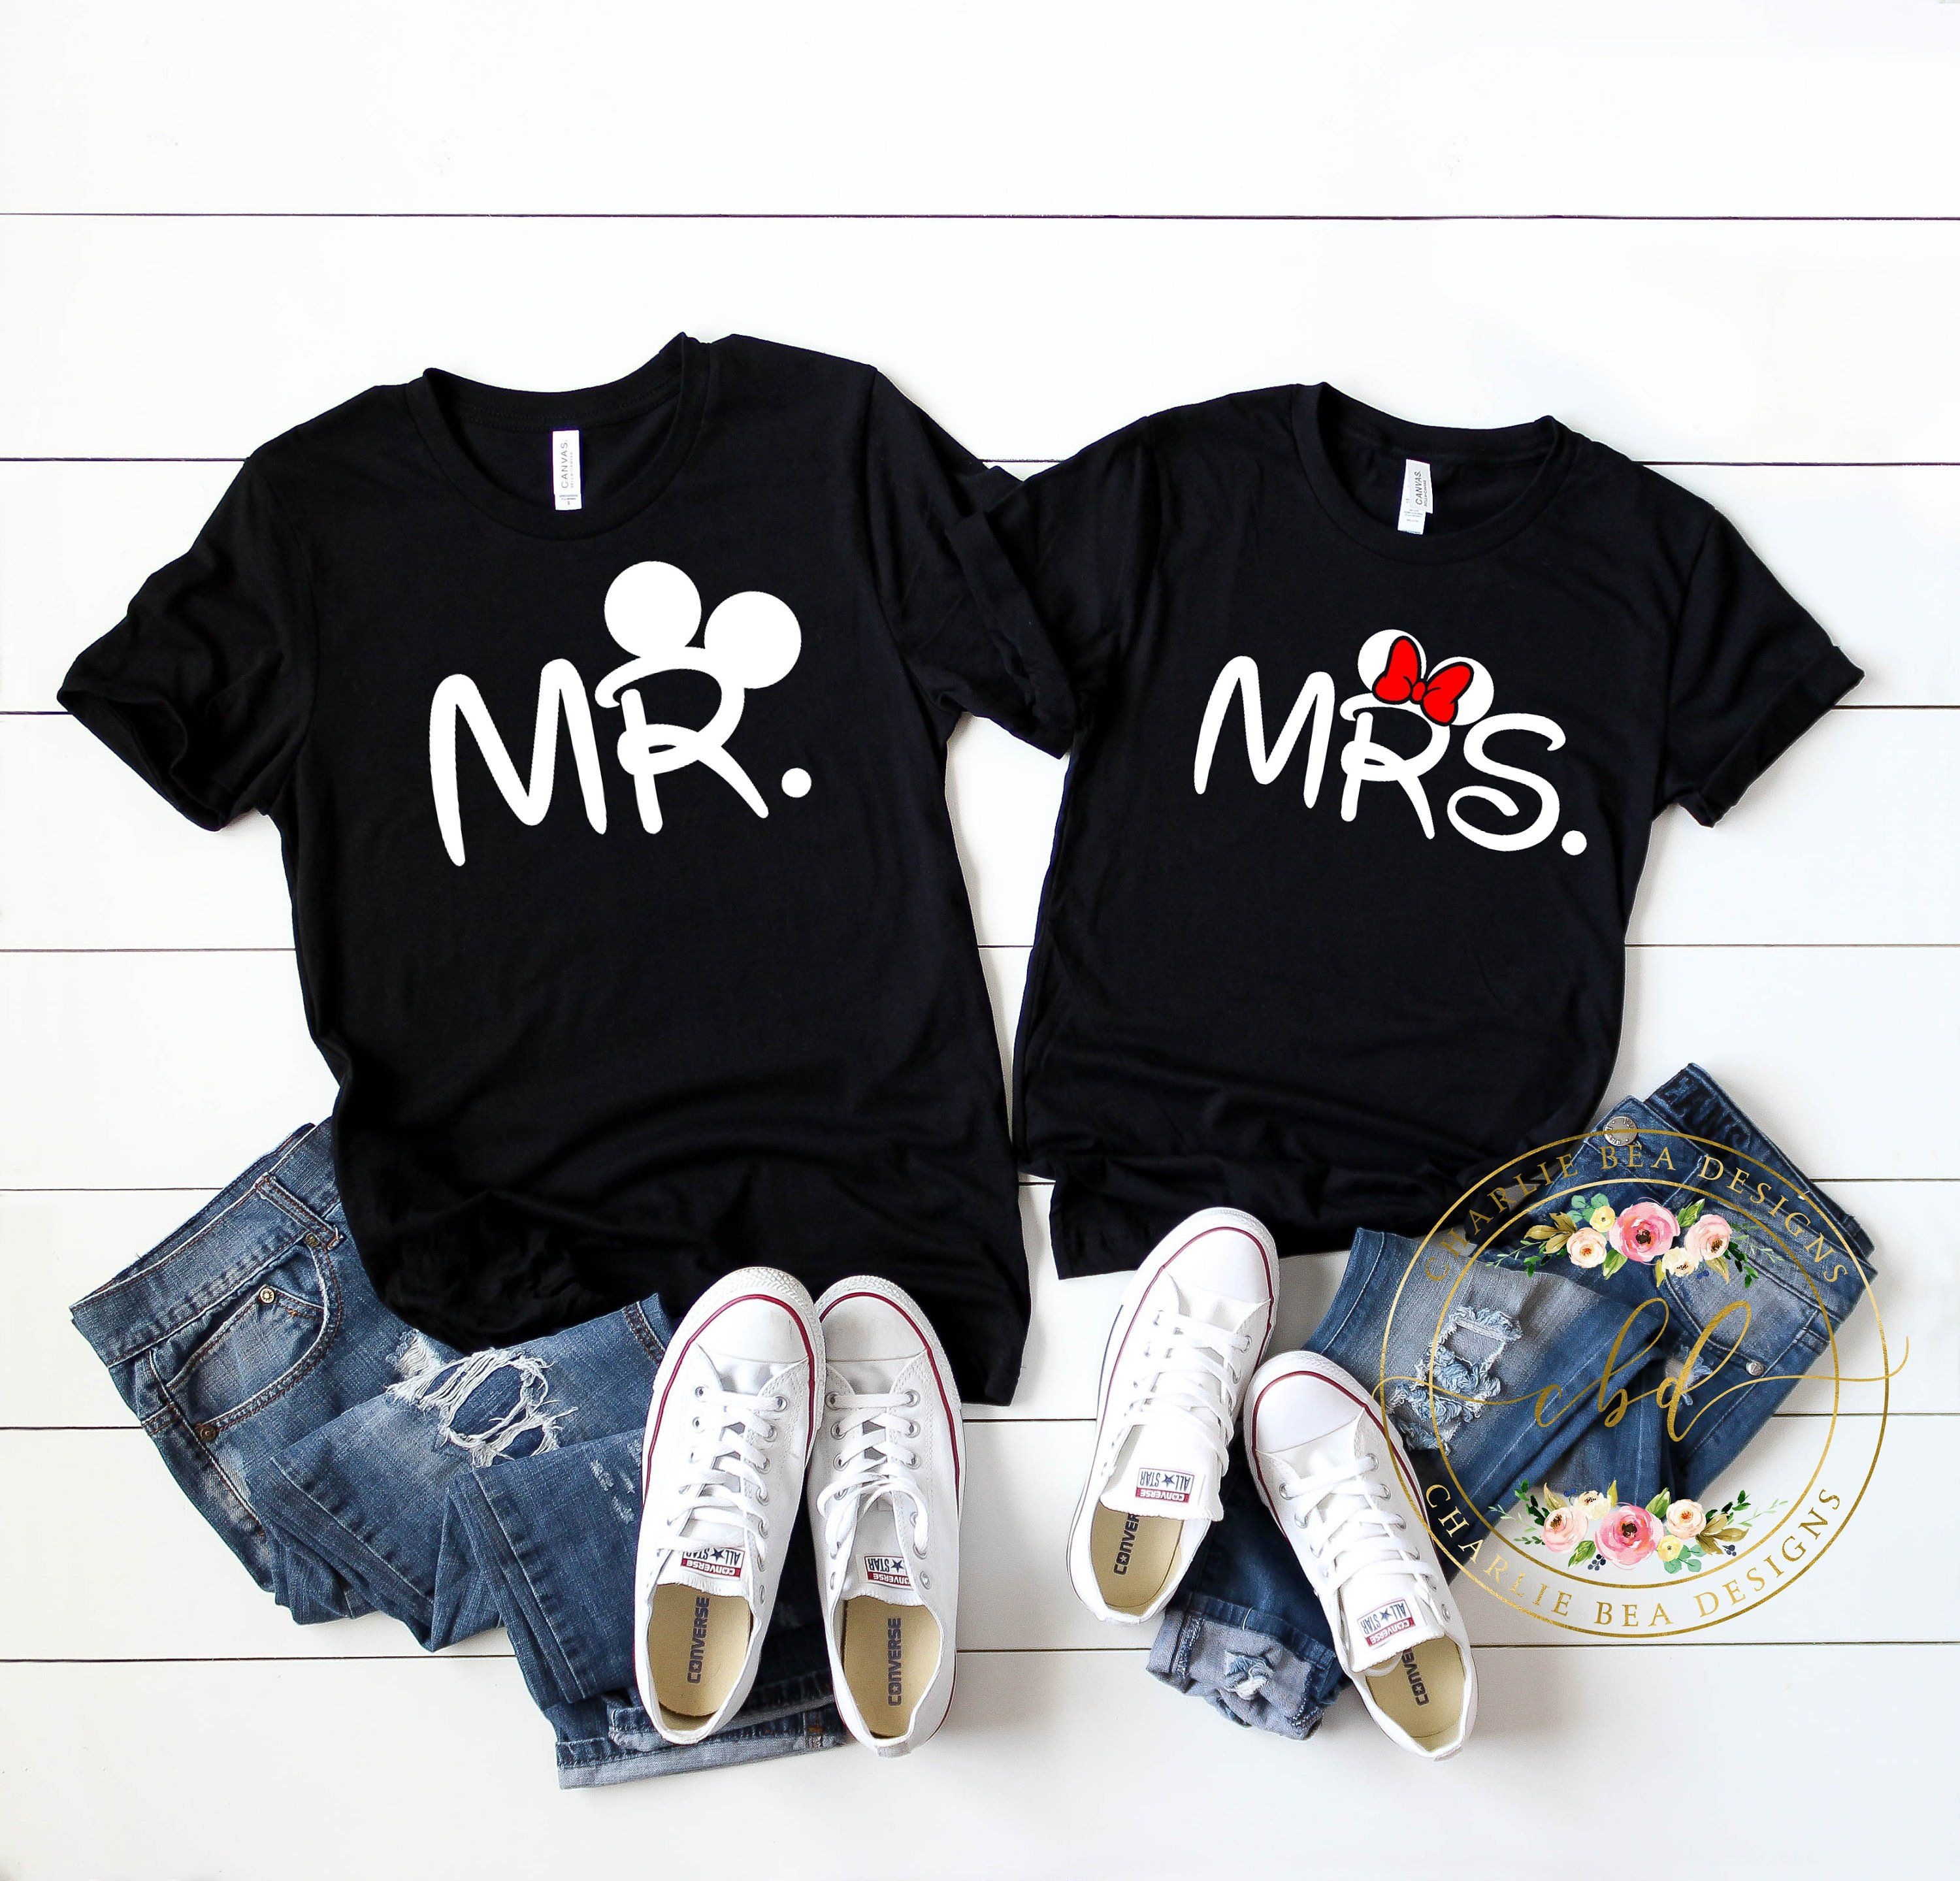 6d9713de6a Disney Shirt - Disney Couples Shirt - Mr. and Mrs. Mickey and Minnie Shirts  - Disney Honeymoon by CharlieBeaDesigns on Etsy